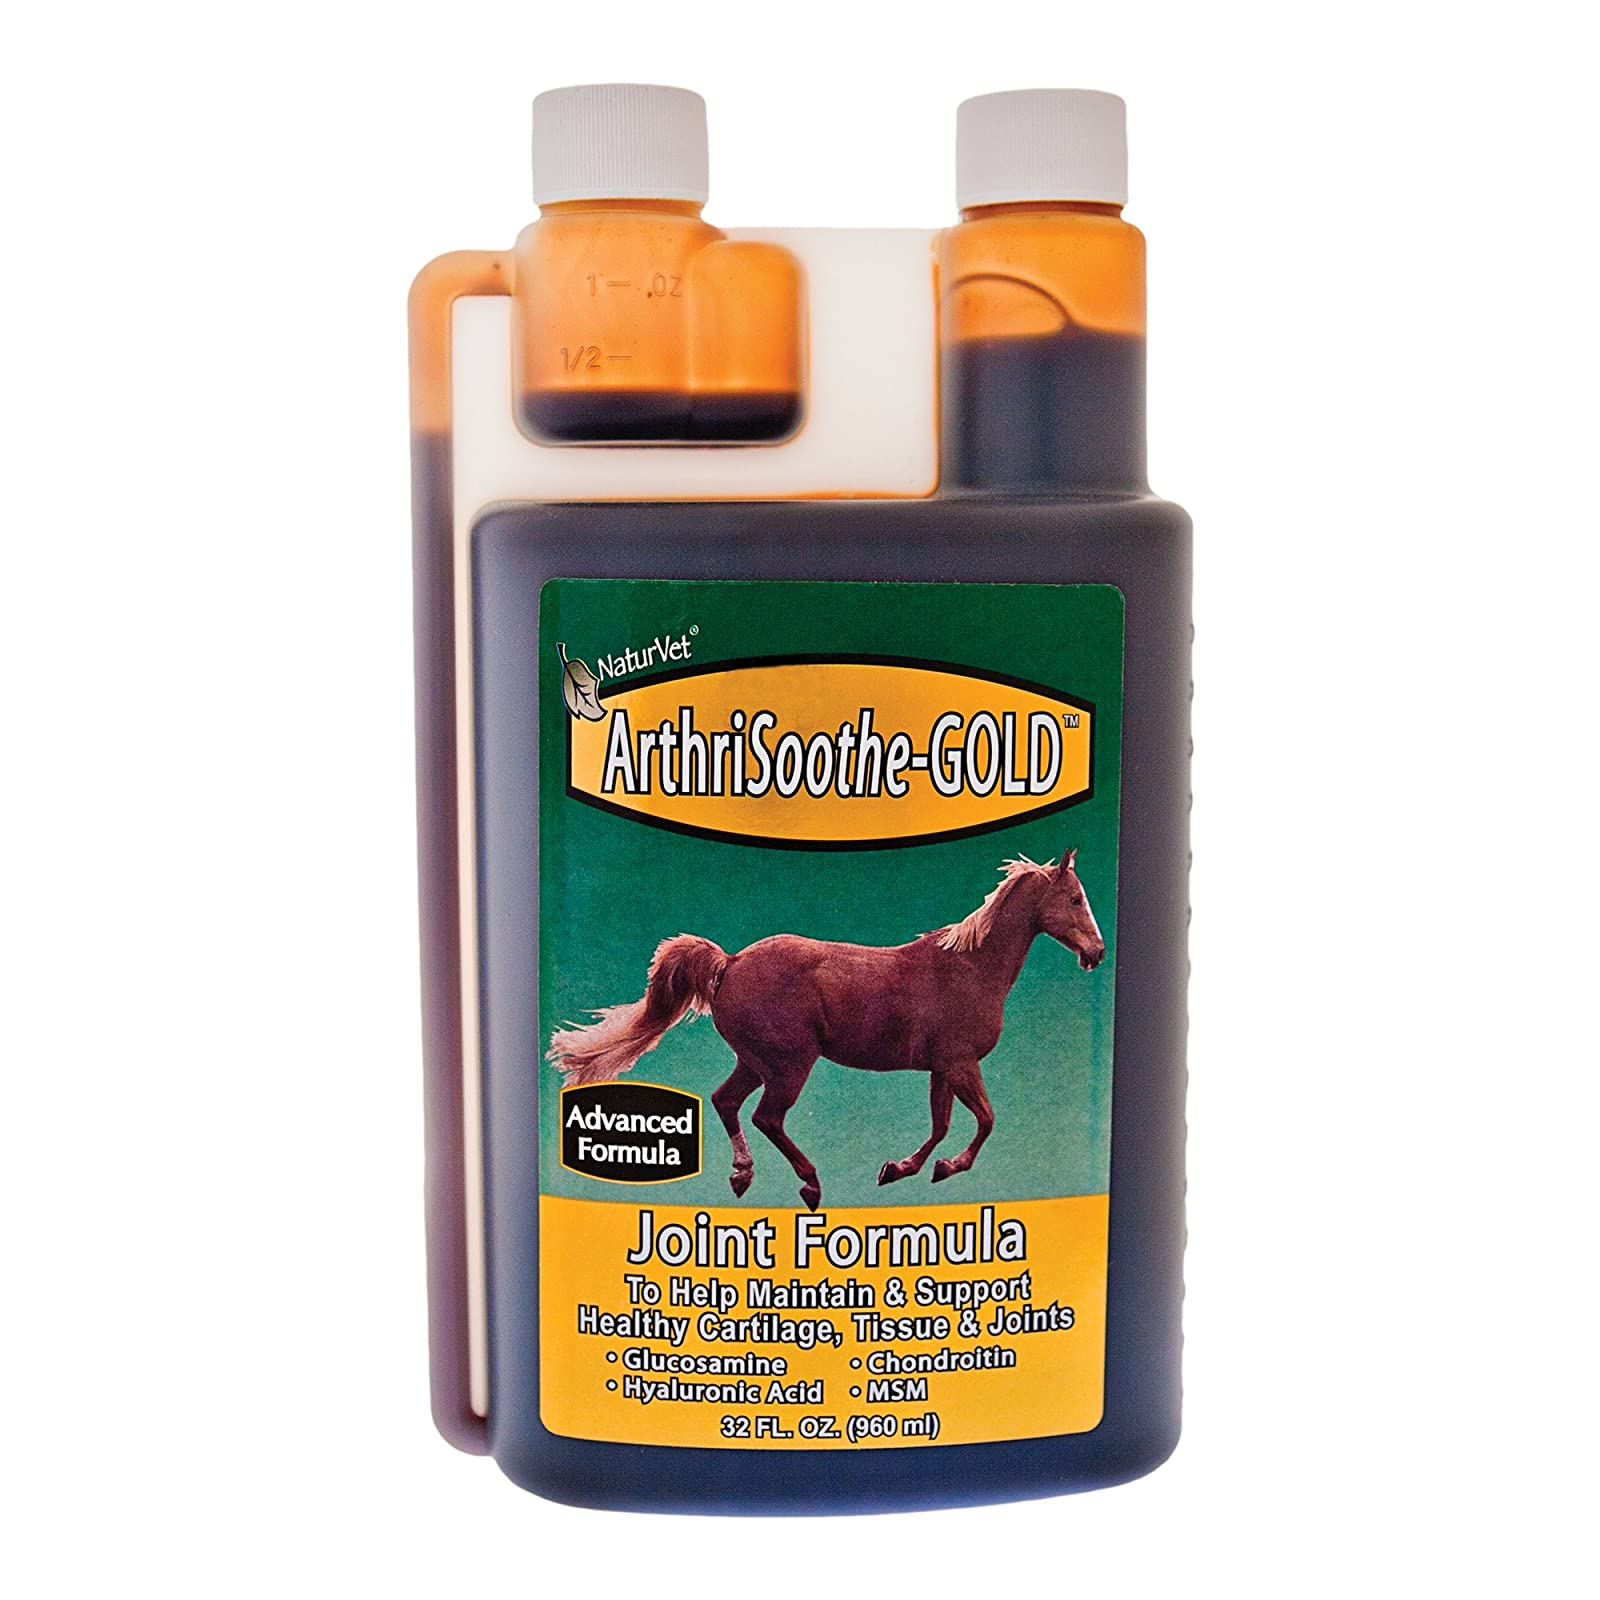 NaturVet ArthriSoothe-GOLD Advanced Joint FormulaHorses 32 79901009 - 1